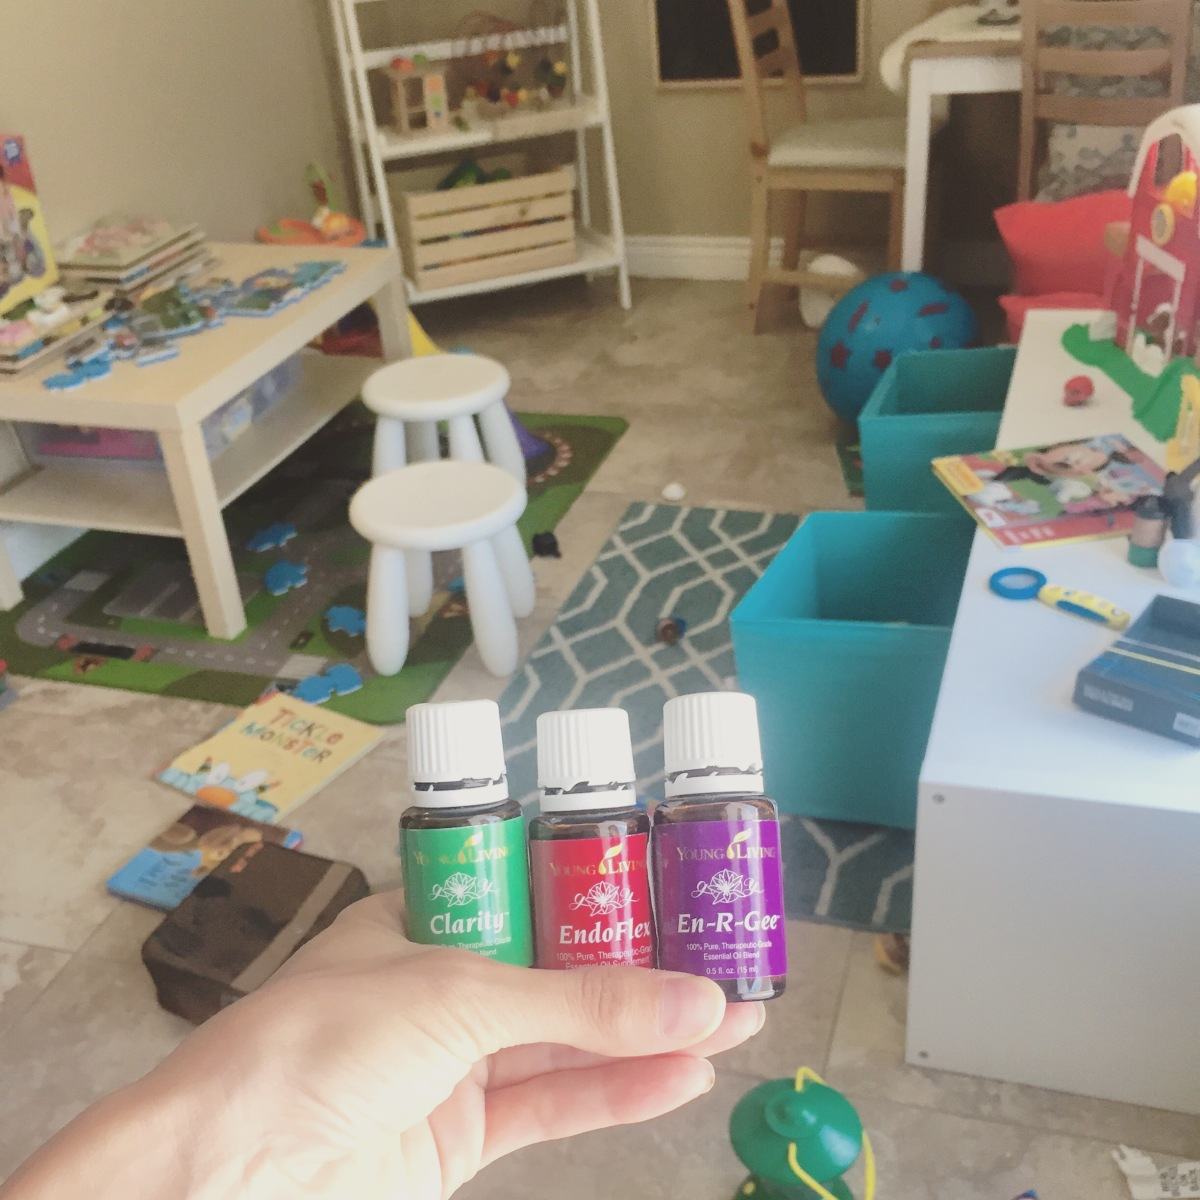 A *REAL* Day in the Life of a Stay-At-Home-Mom: As told by Instagram, Facebook, and #hashtags